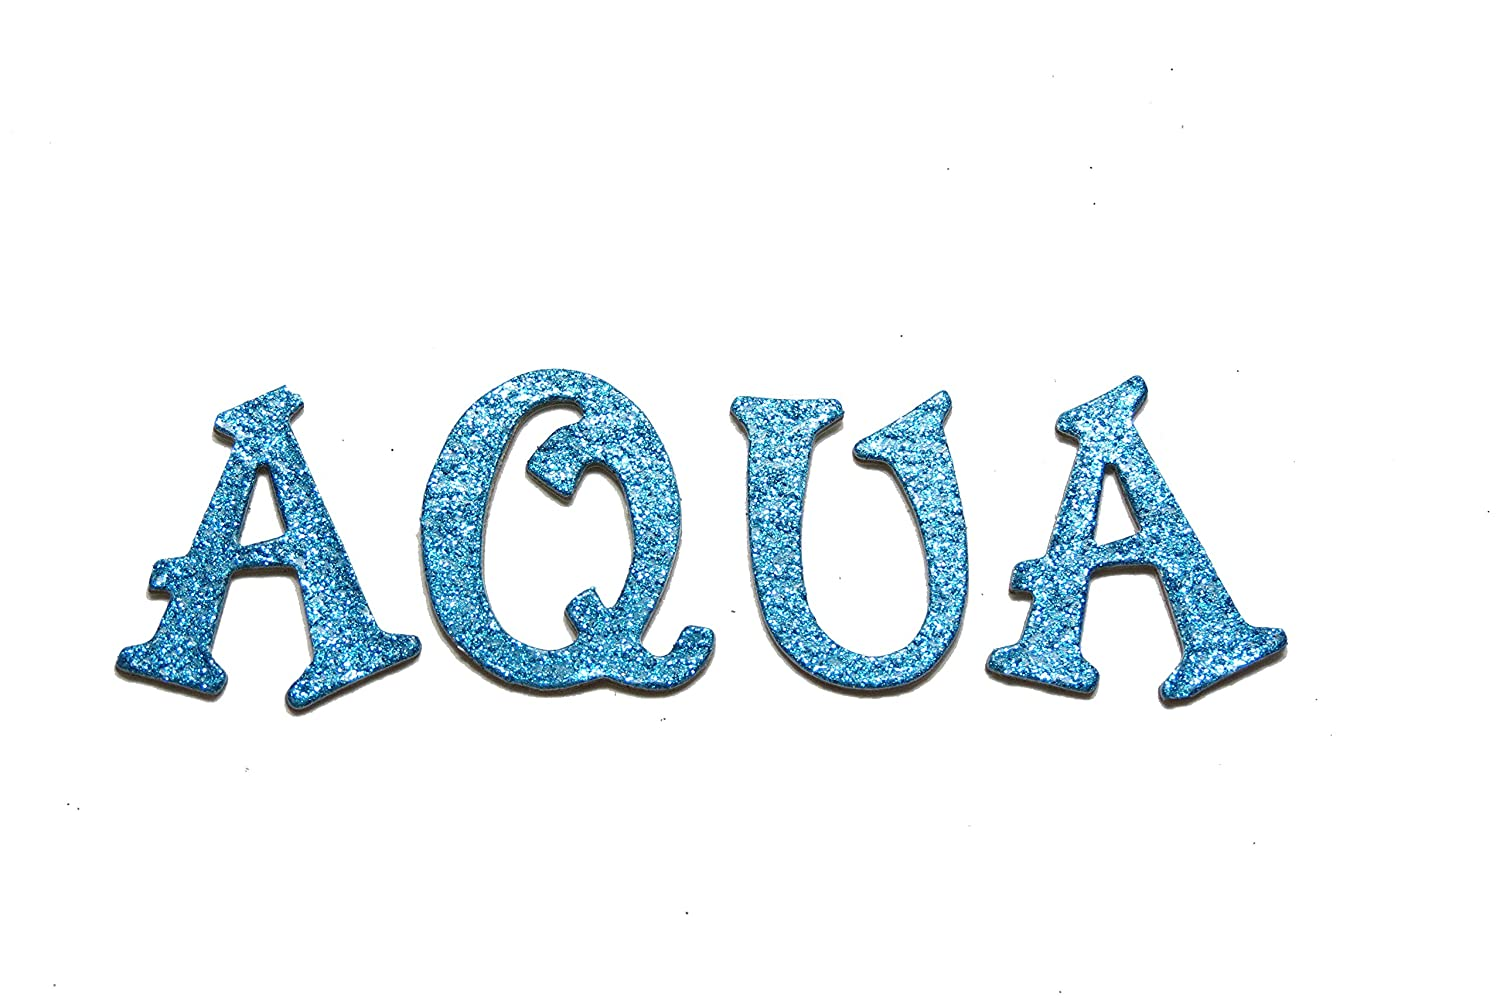 Peacock Aqua Blue Metallic Glitter HandCut 1.5 Chipboard Uppercase Letters Alphabet set 60 pcs Stickers